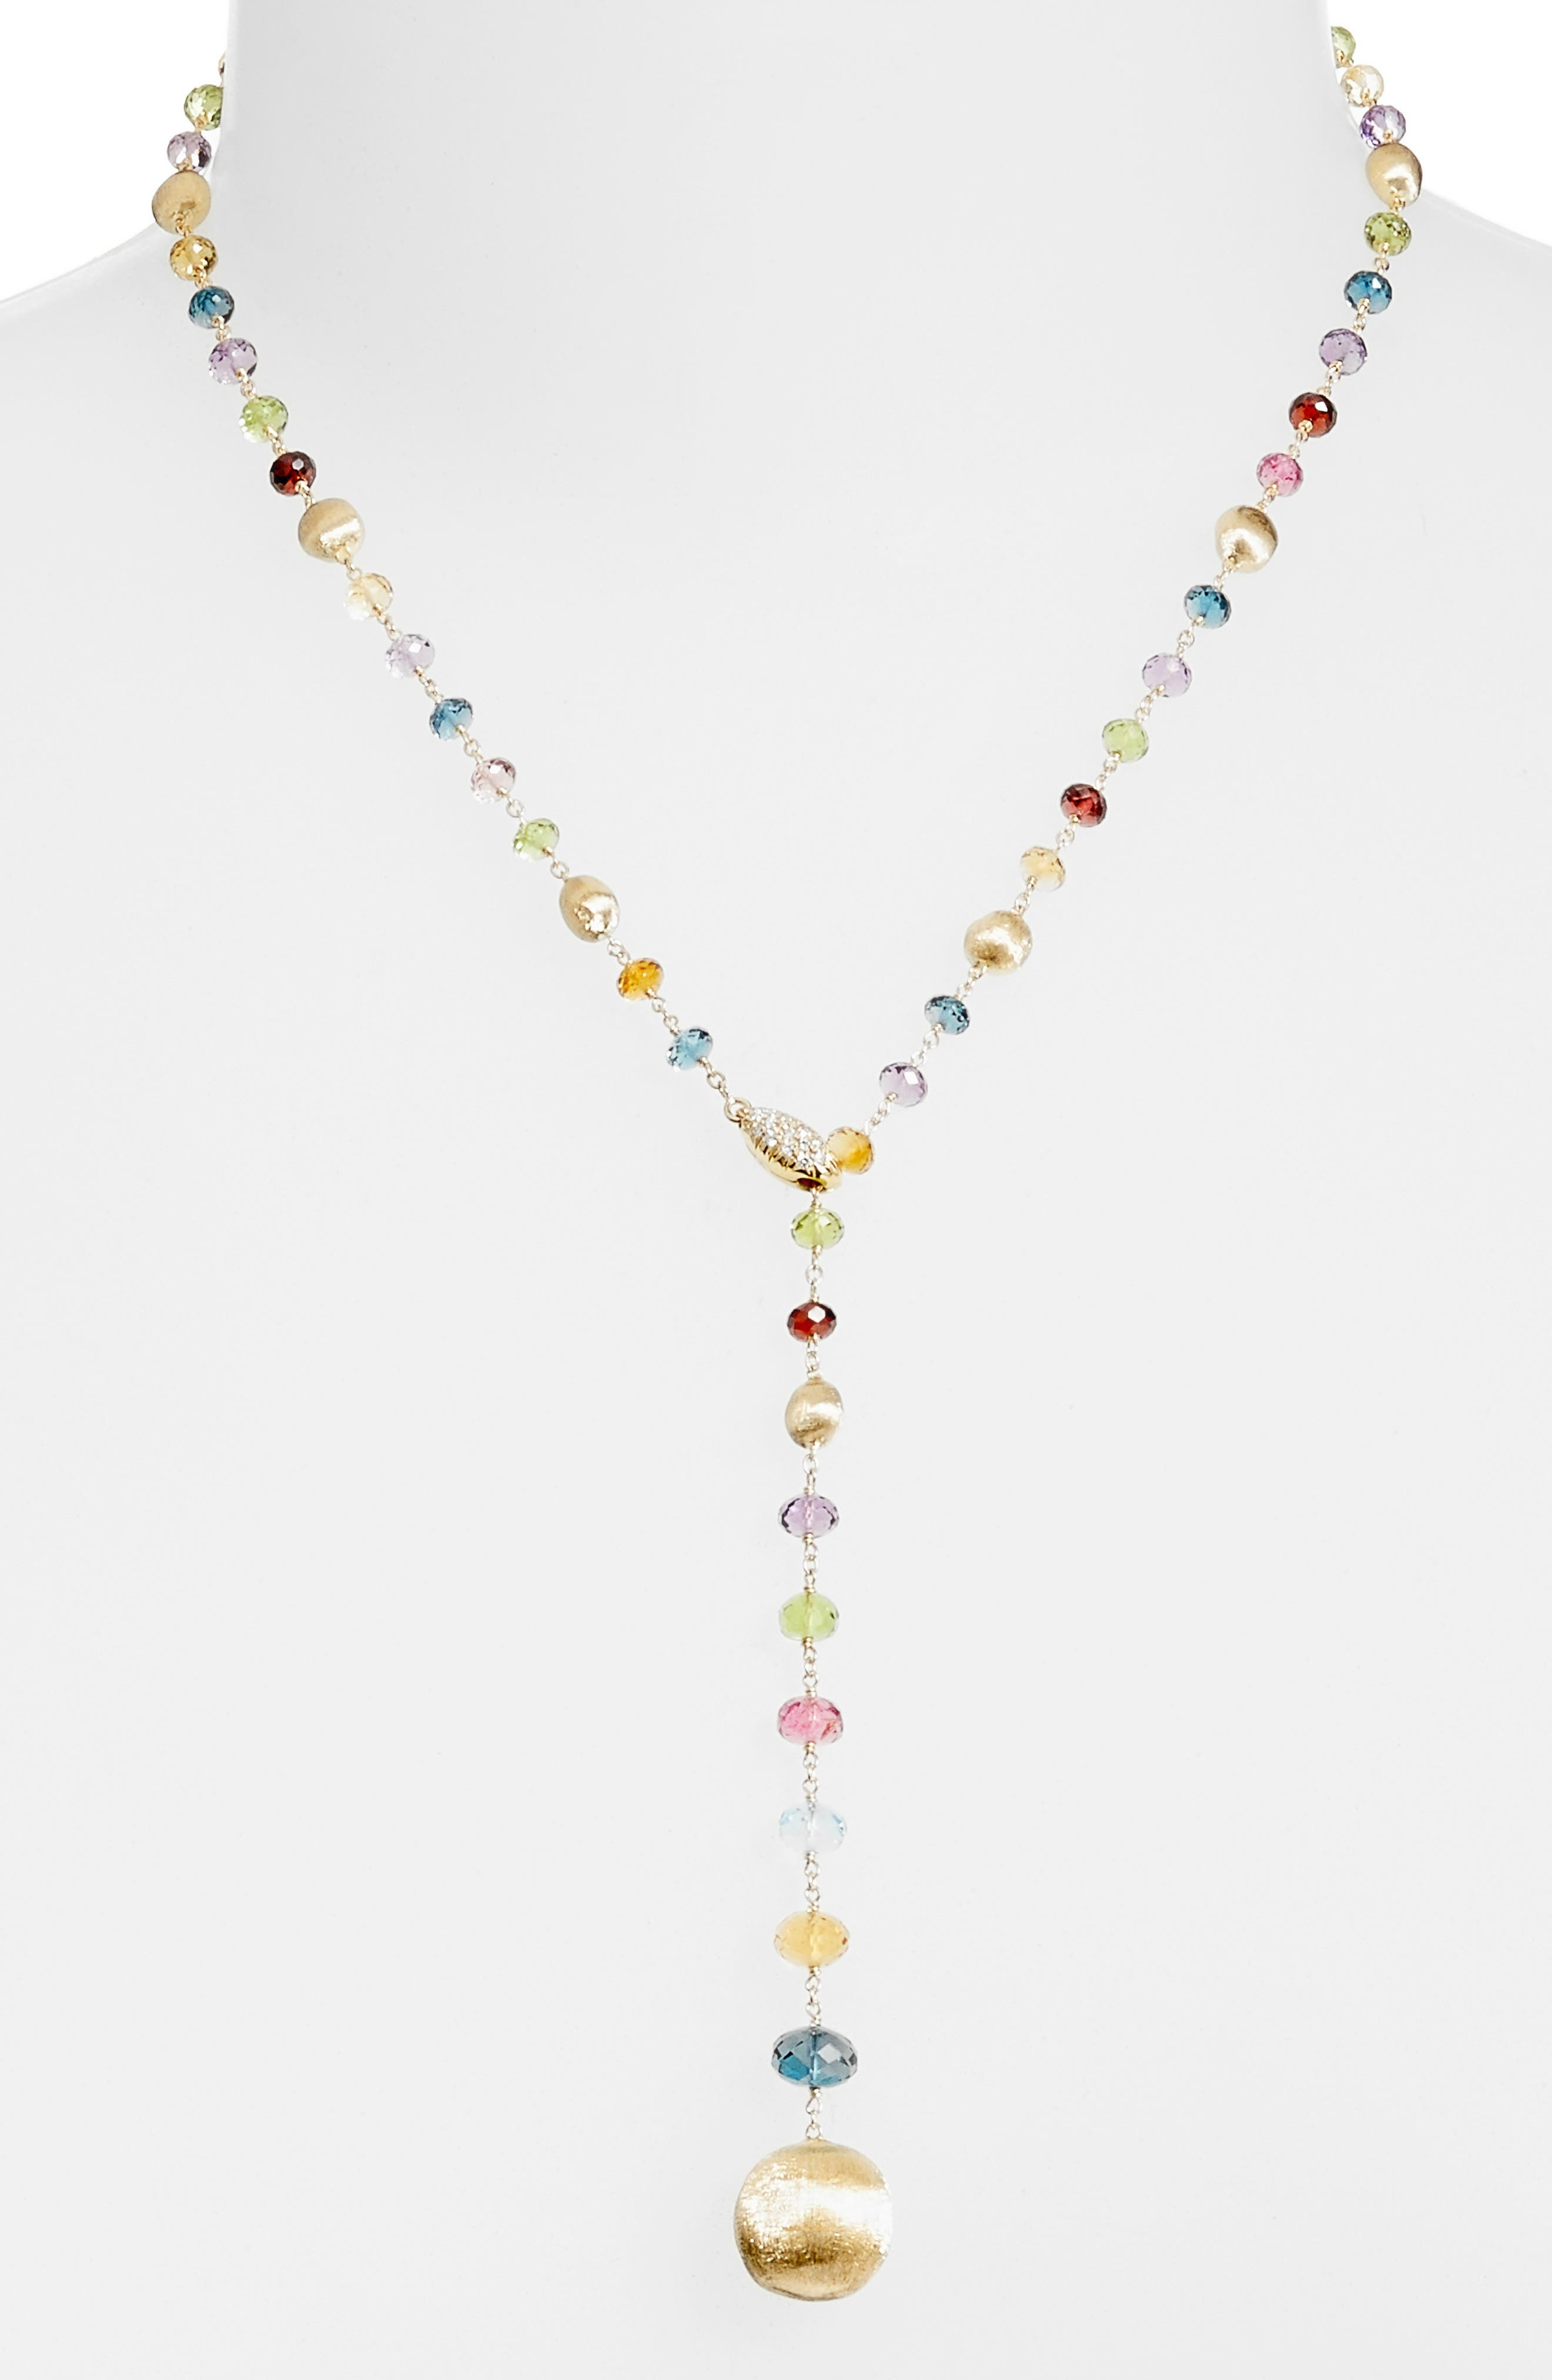 Africa Semiprecious Stone Lariat Necklace,                             Main thumbnail 1, color,                             YELLOW GOLD